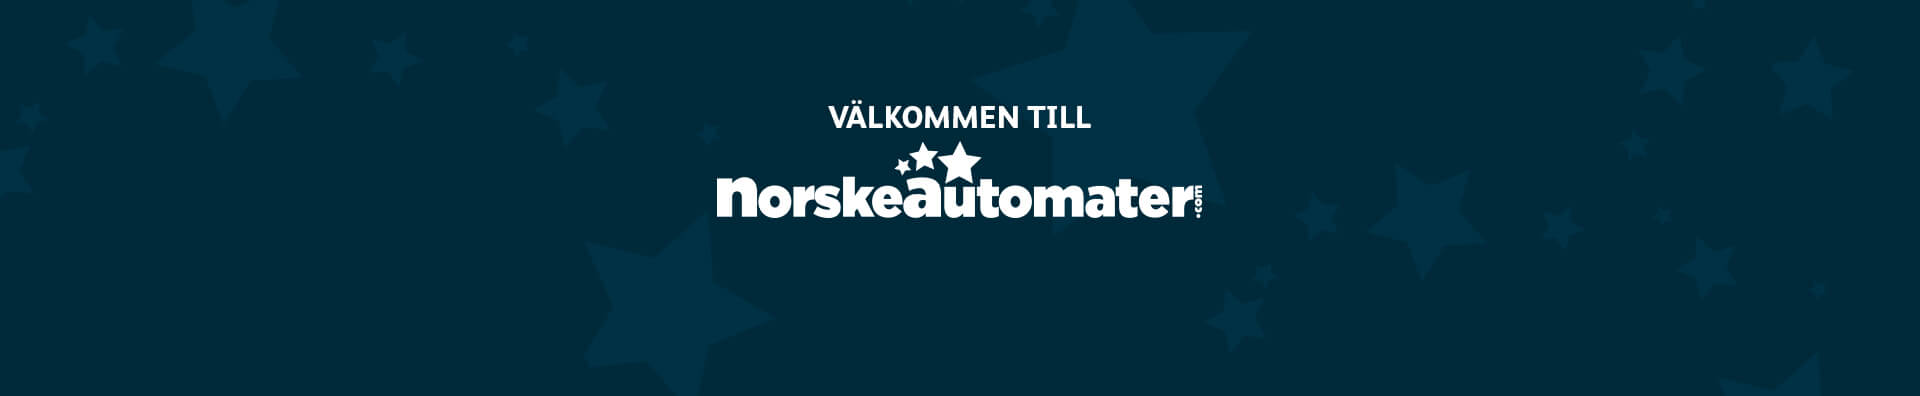 Norske automater 27813